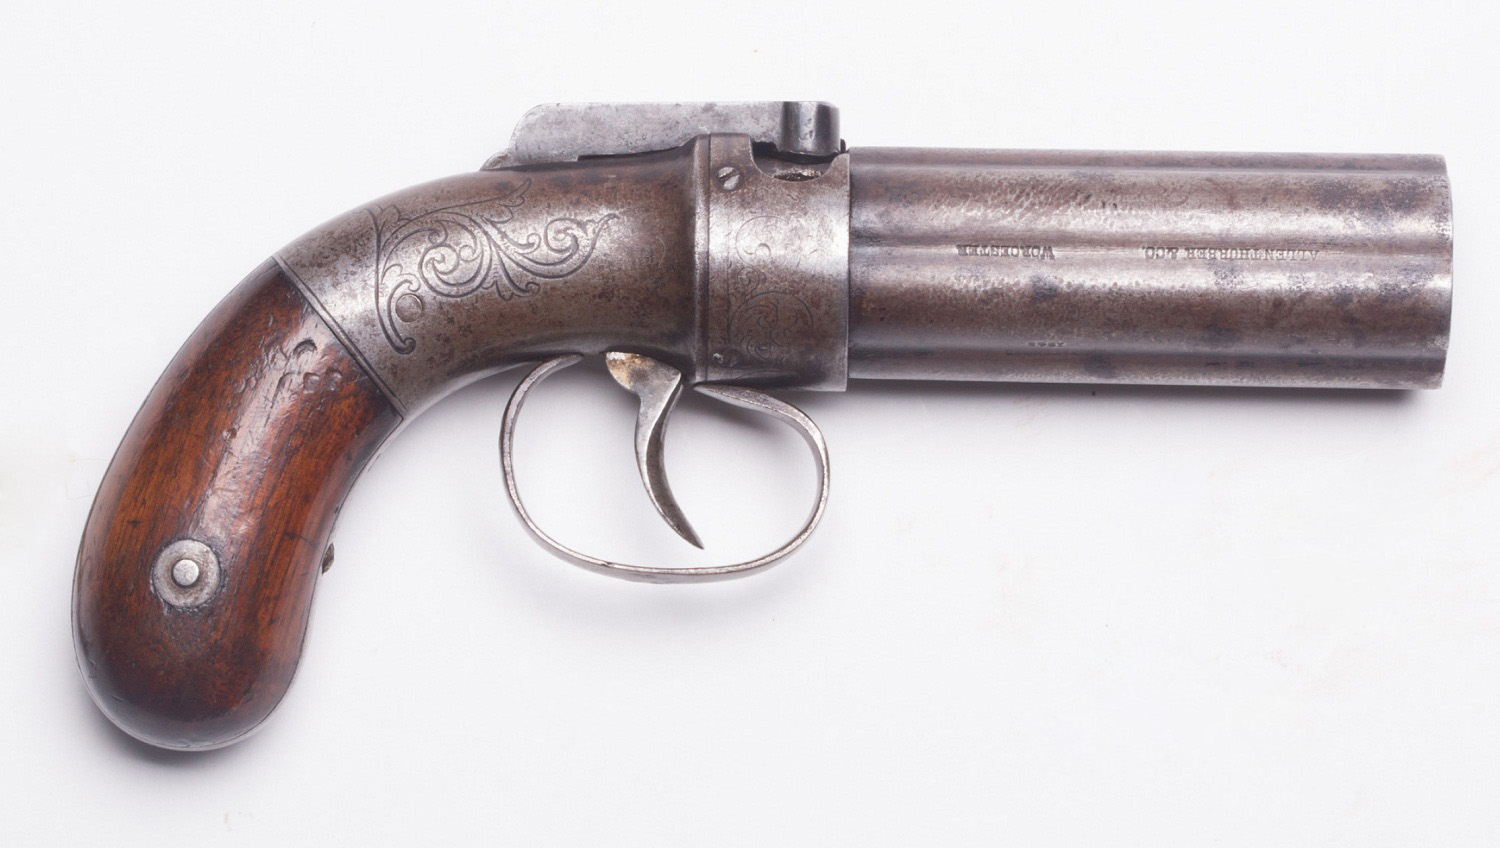 Allen & Thurber pepperbox